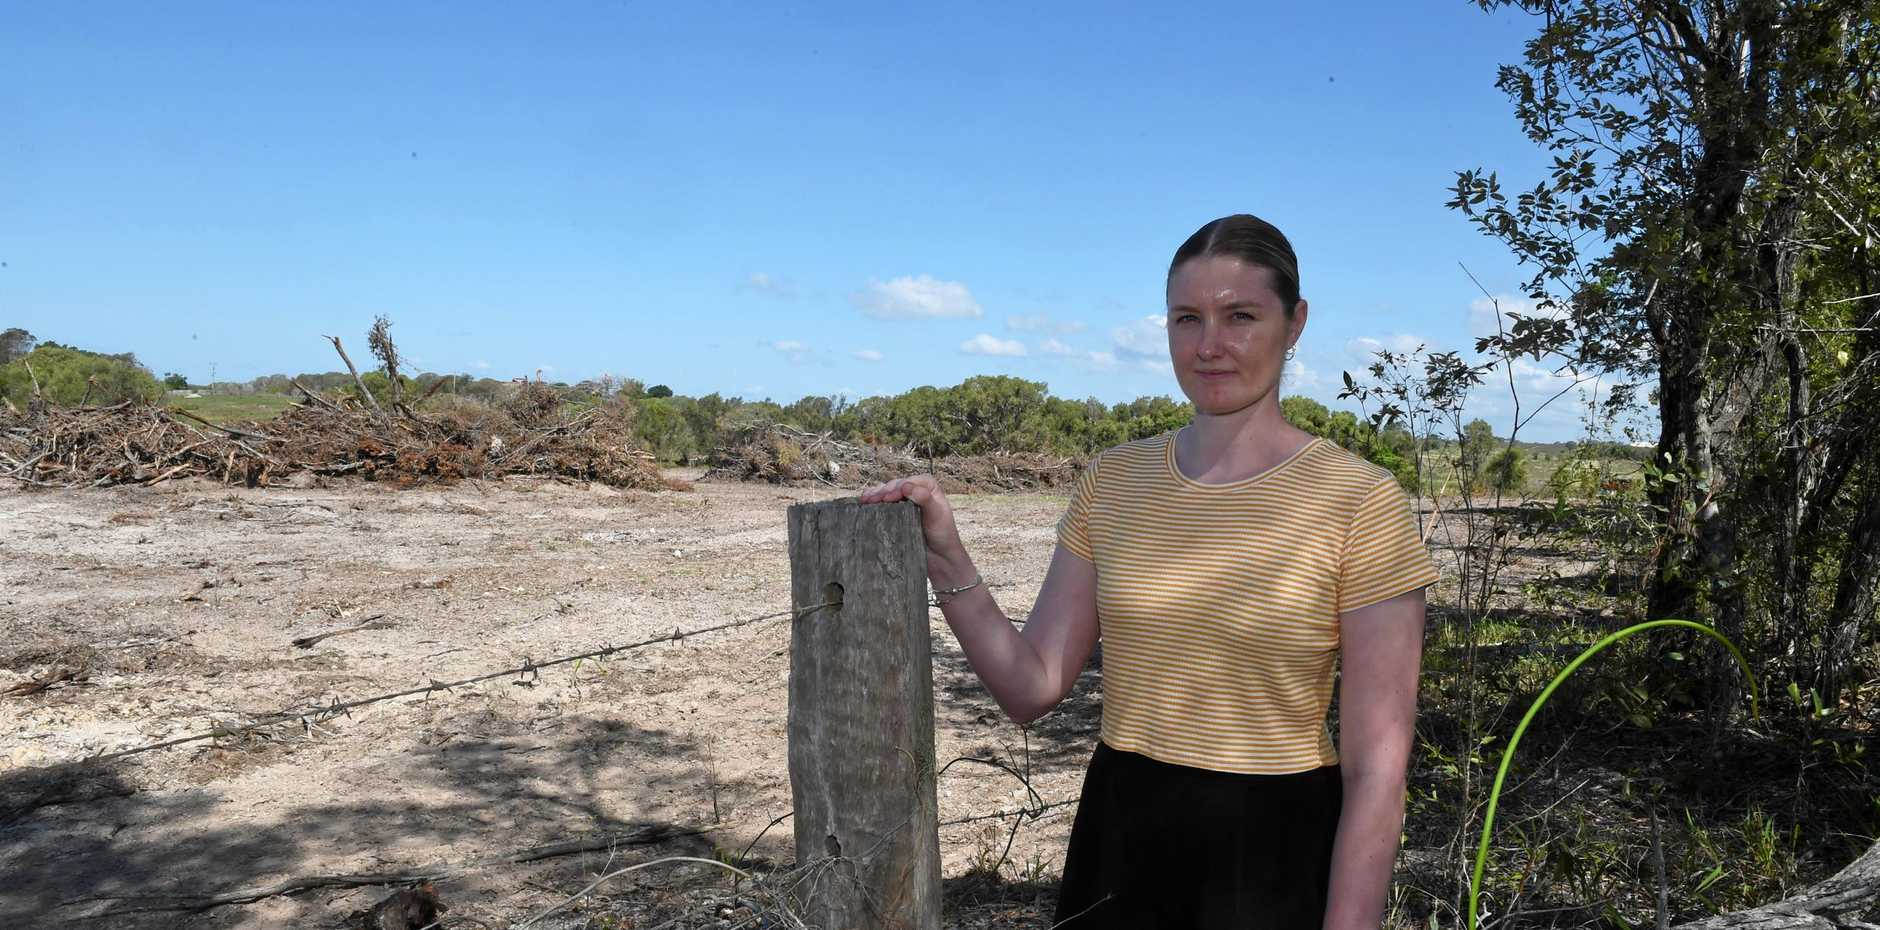 LAND CLEARED: Dundowran resident Becky McIntyre looks out onto the cleared land that will become part of the development of a new housing estate and sports club. Developer Leda Holdings is undertaking preliminary site works for the project.